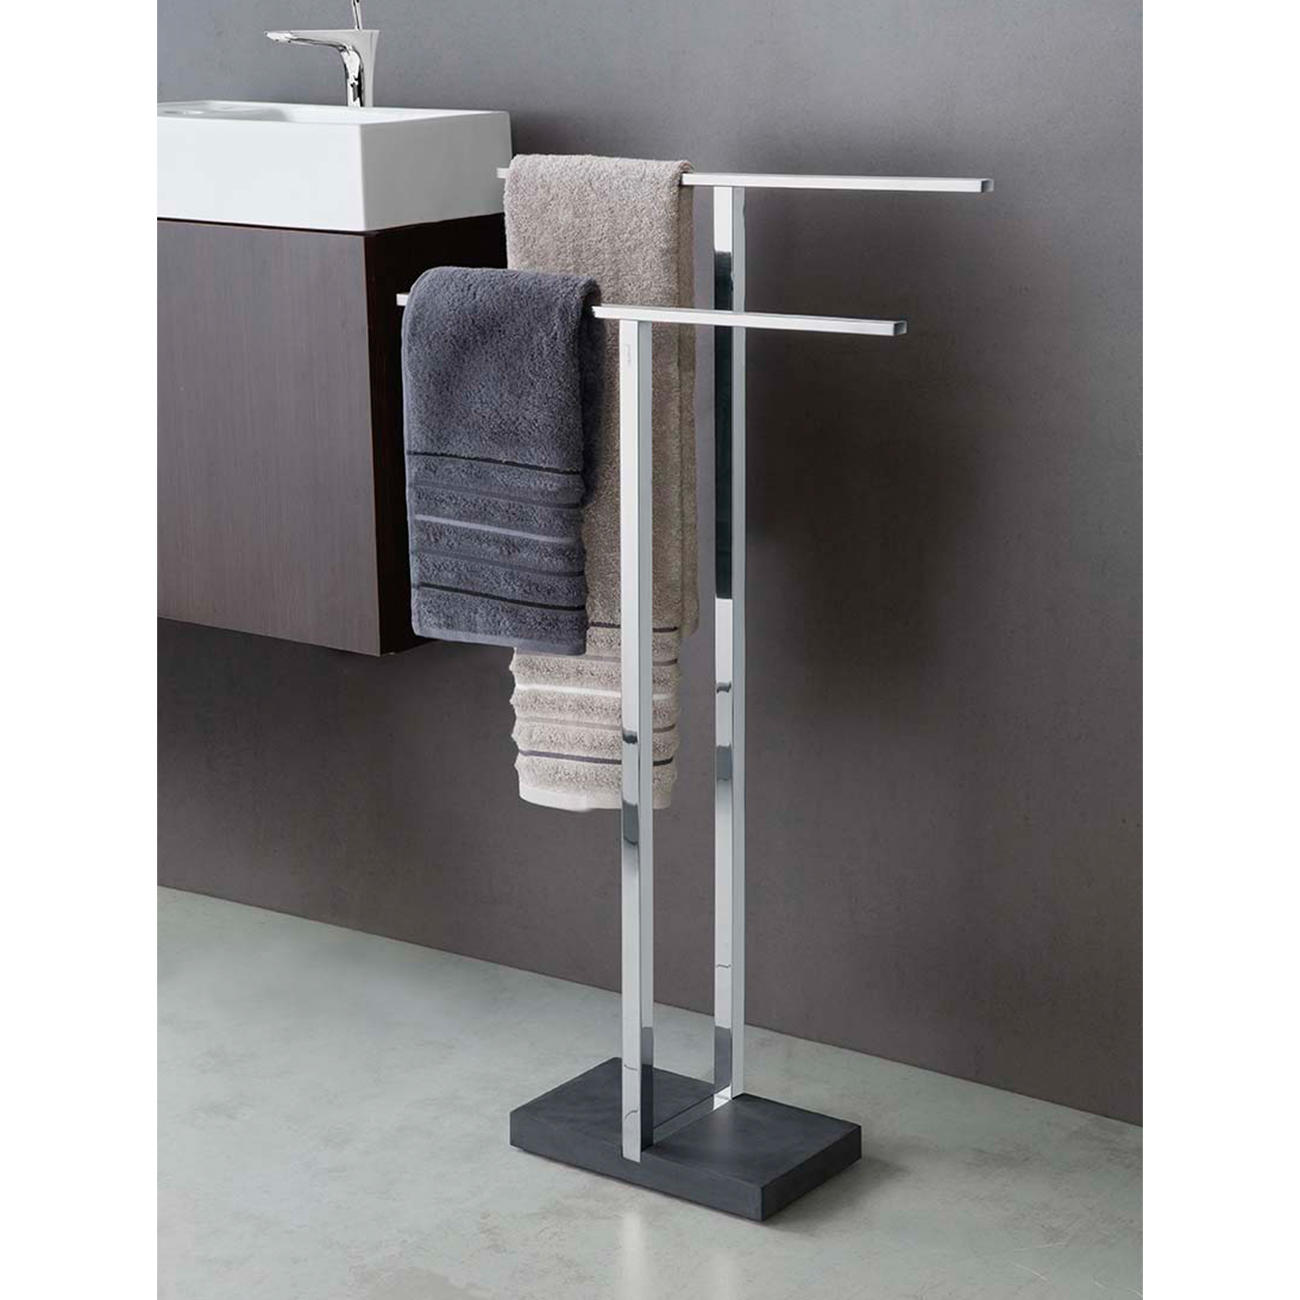 Buy Polystone Wc Butler Or Towel Rack Online